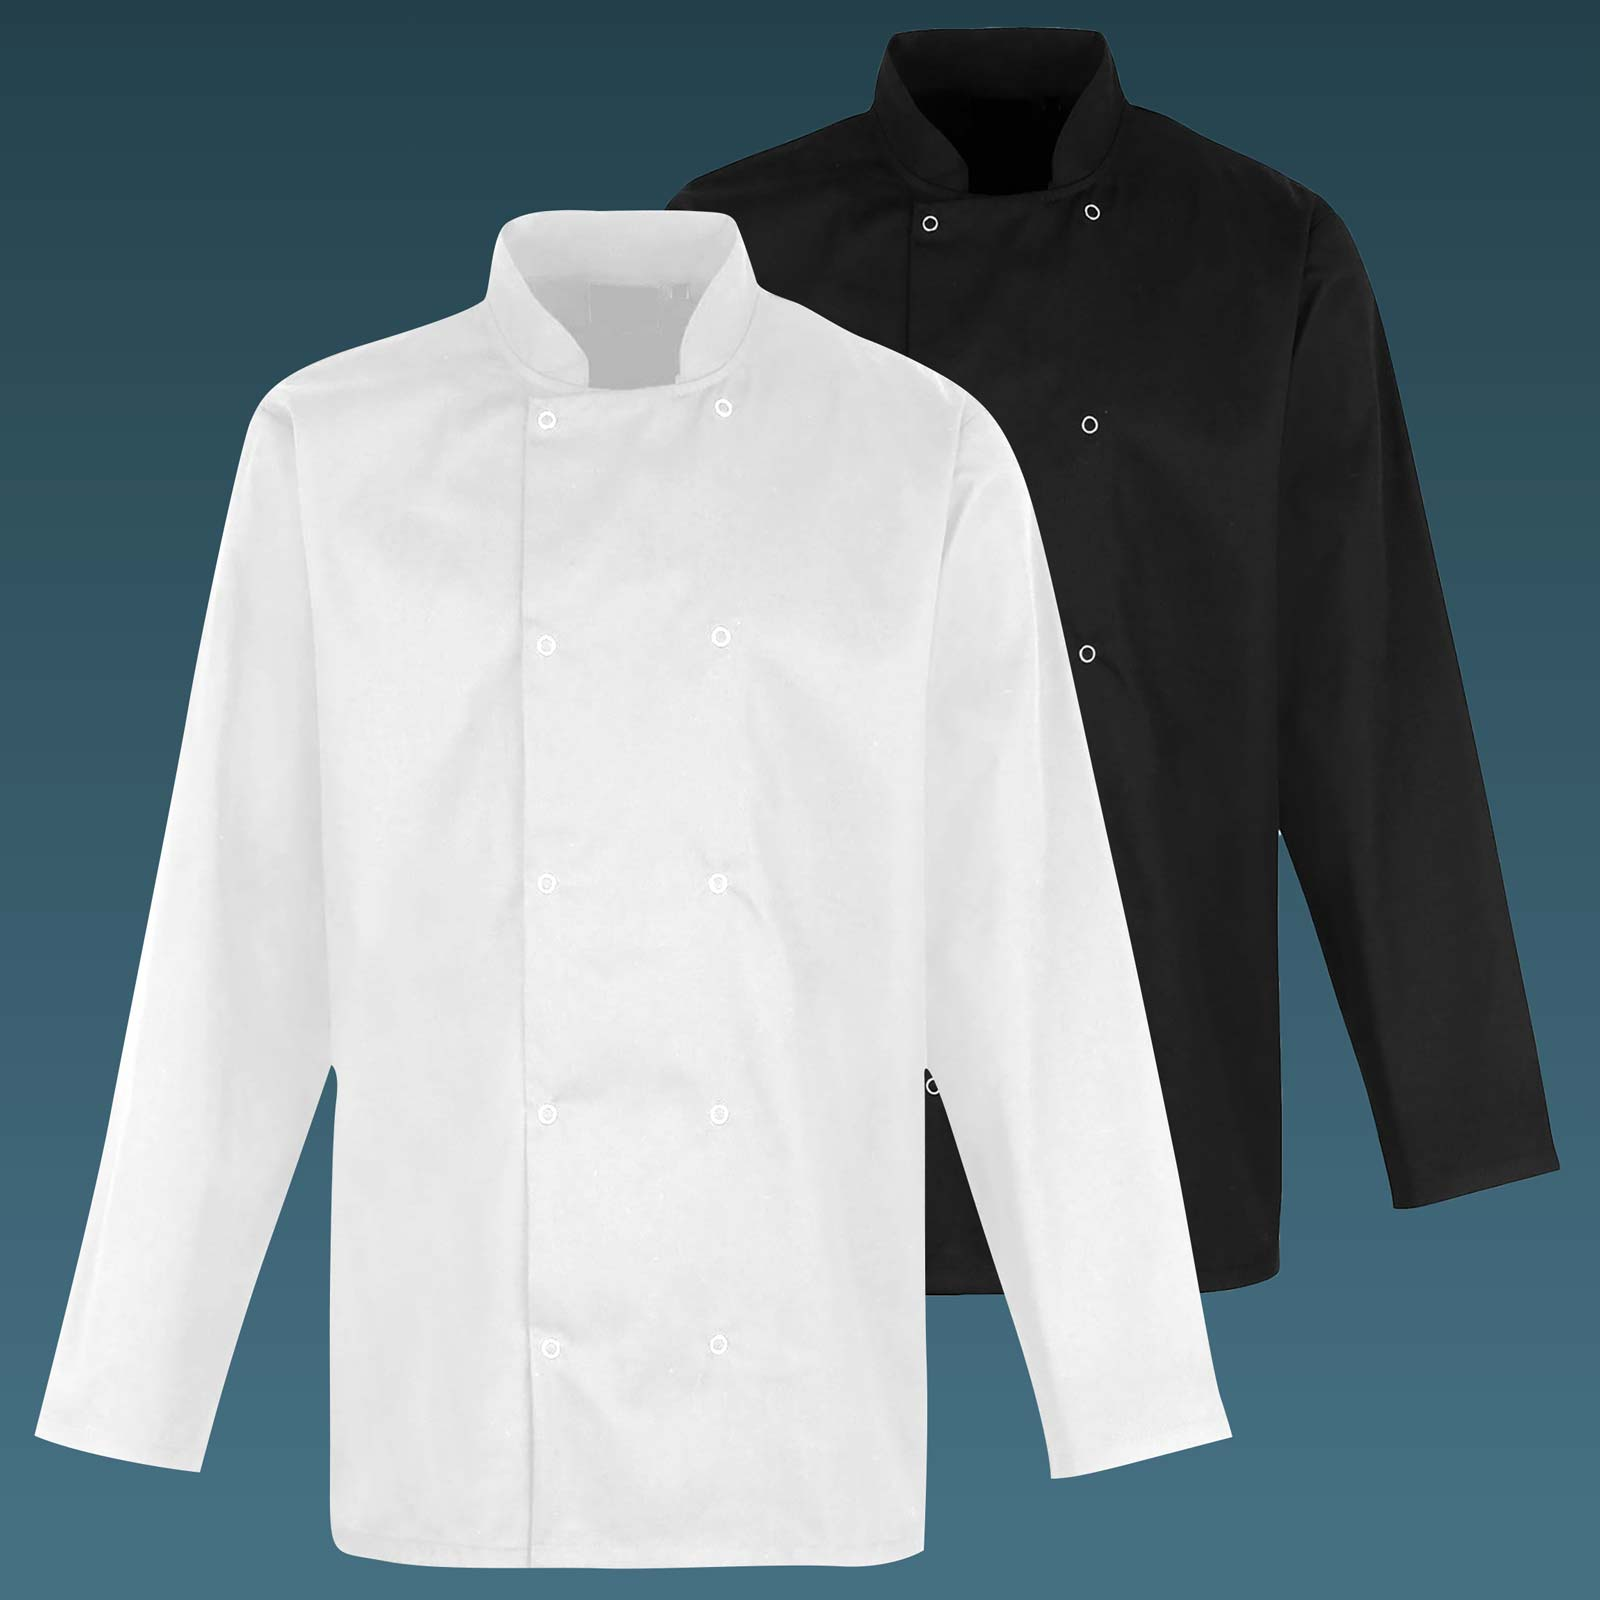 Value Chefs Jacket Unisex Long Sleeve - CCJ2